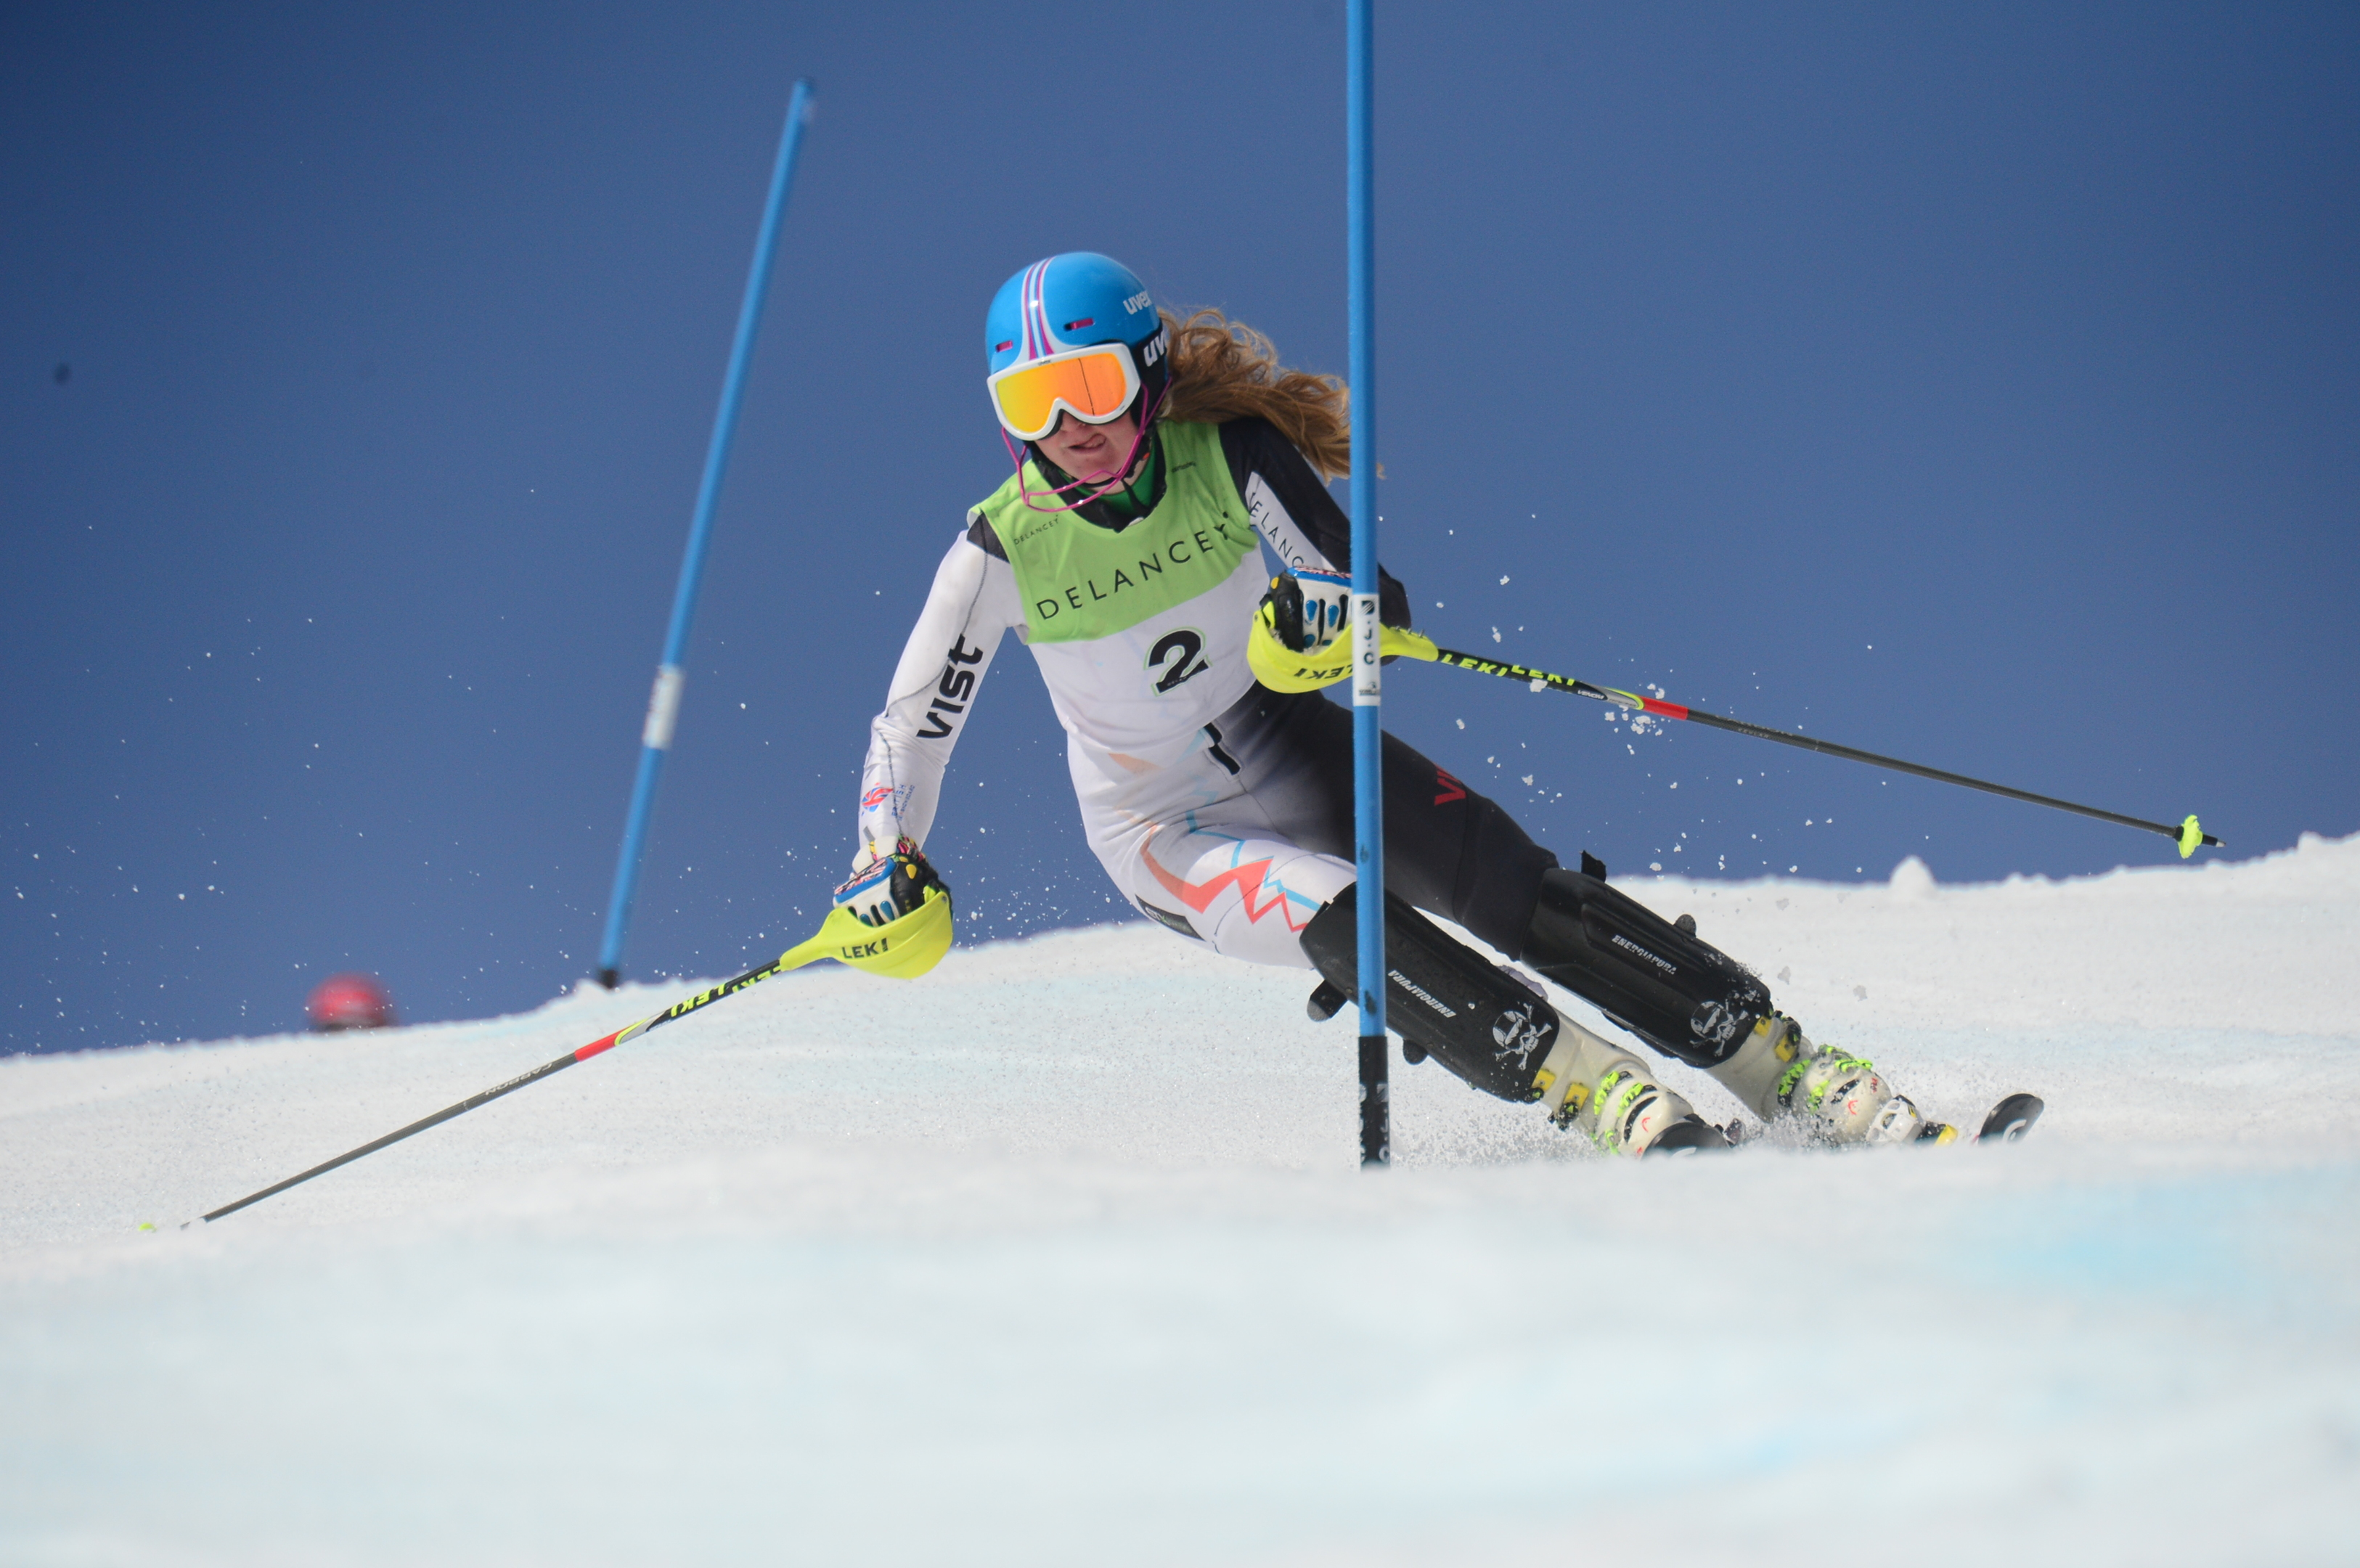 Charlie has secured the Olympic qualifying standard during a series of solid finishes on the European and World circuits